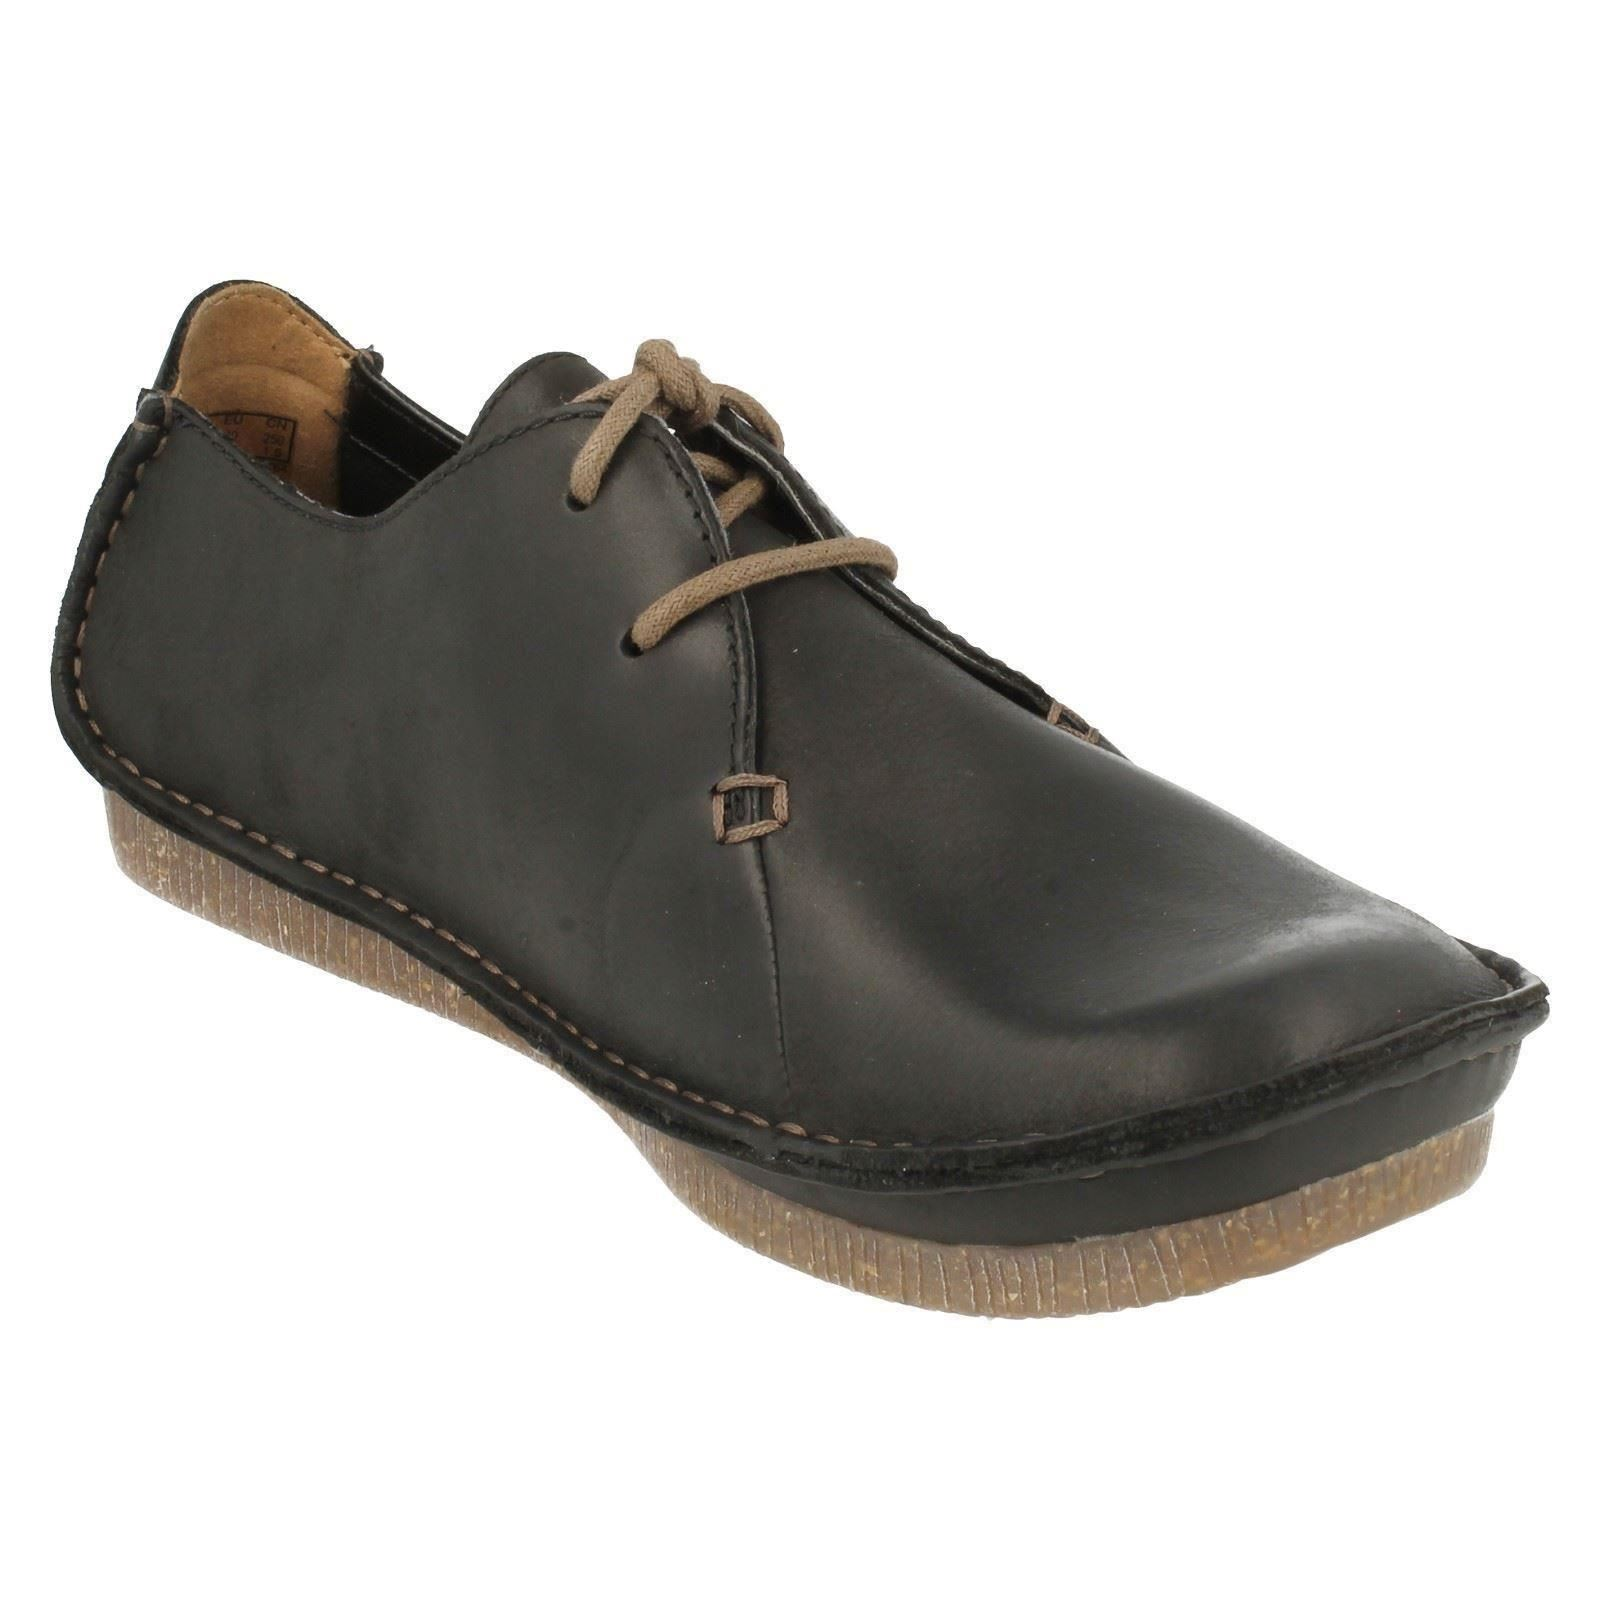 Clarks-Ladies-Casual-Lace-Up-Leather-Flat-shoes-